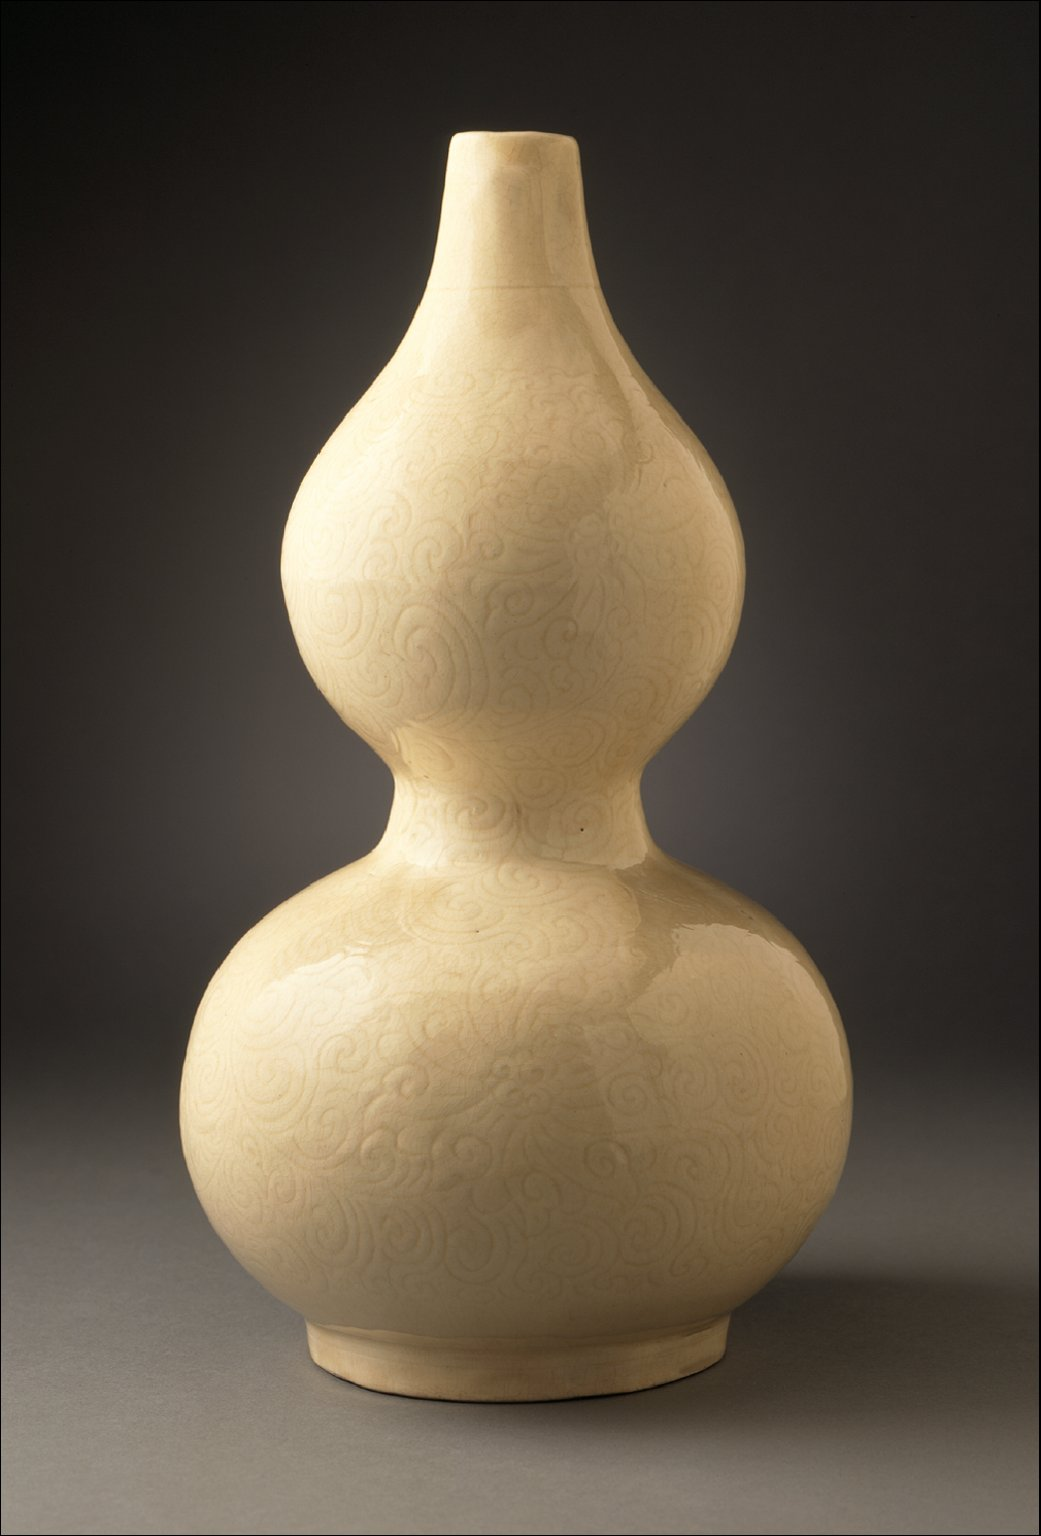 Vase (Ping) in the Form of a Gourd with Floral Scrolls